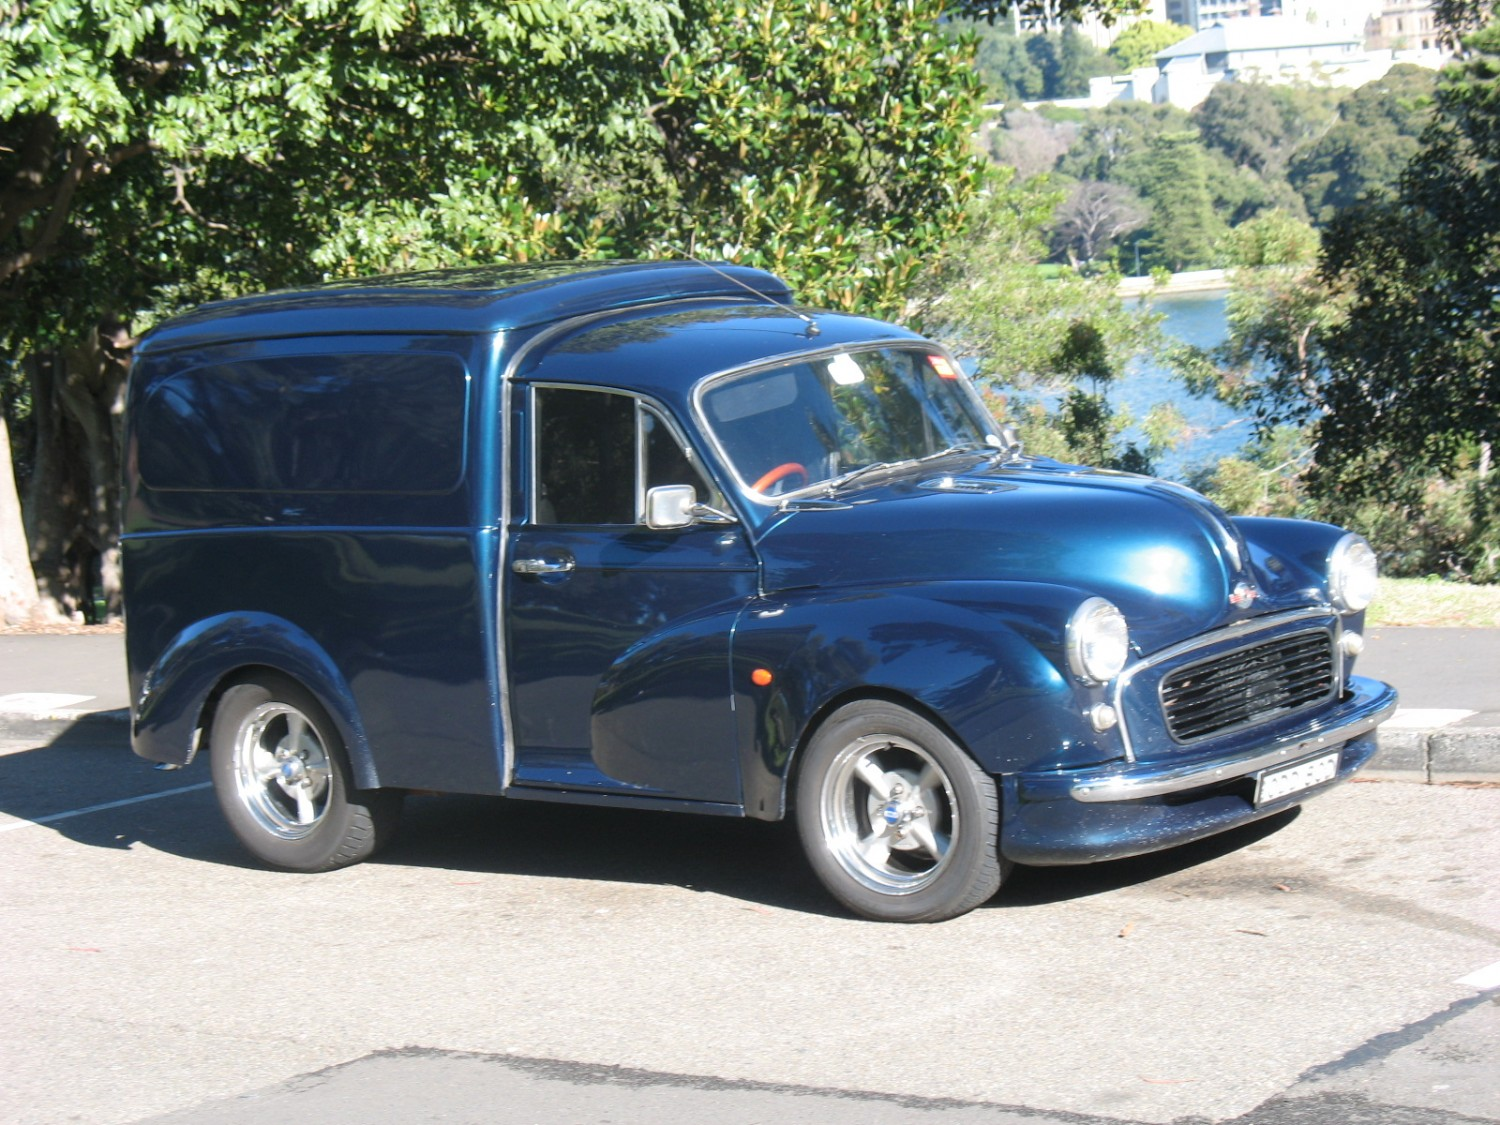 1957 Morris Minor - Oddbod